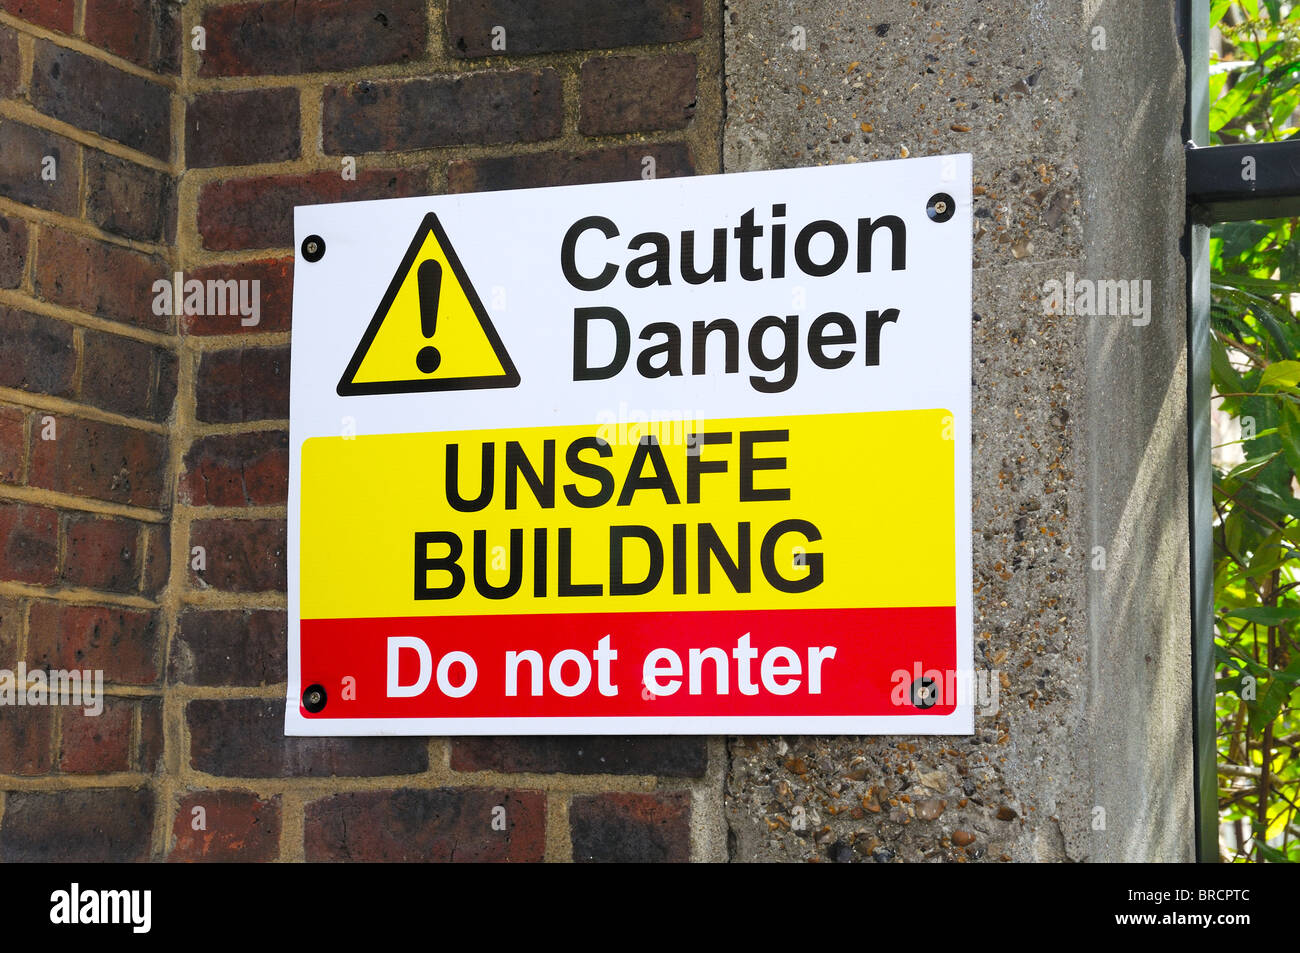 Warning sign for unsafe building - Stock Image